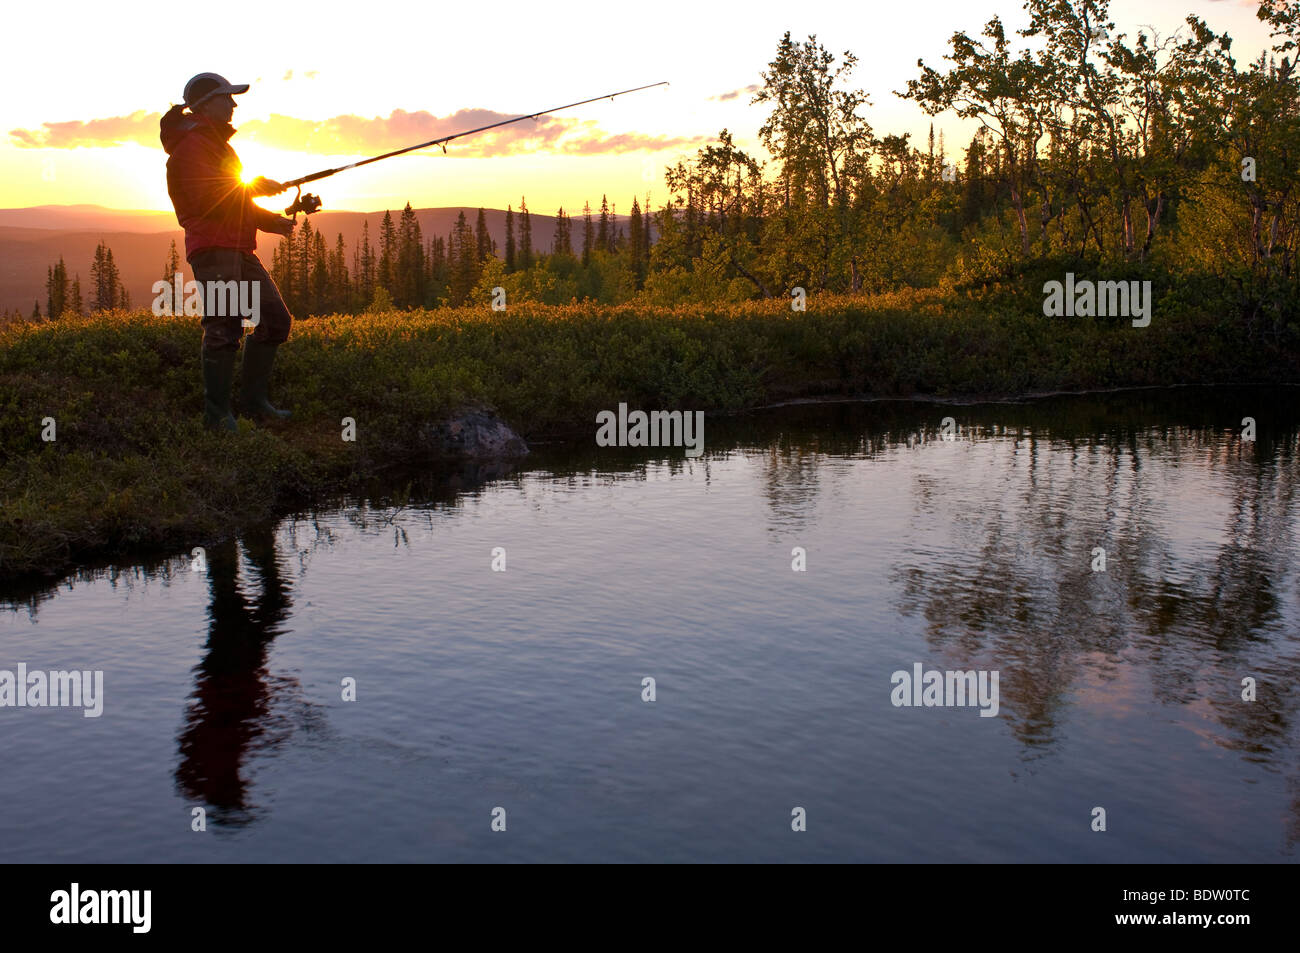 fisher, midnight sun in lapland, sweden Stock Photo